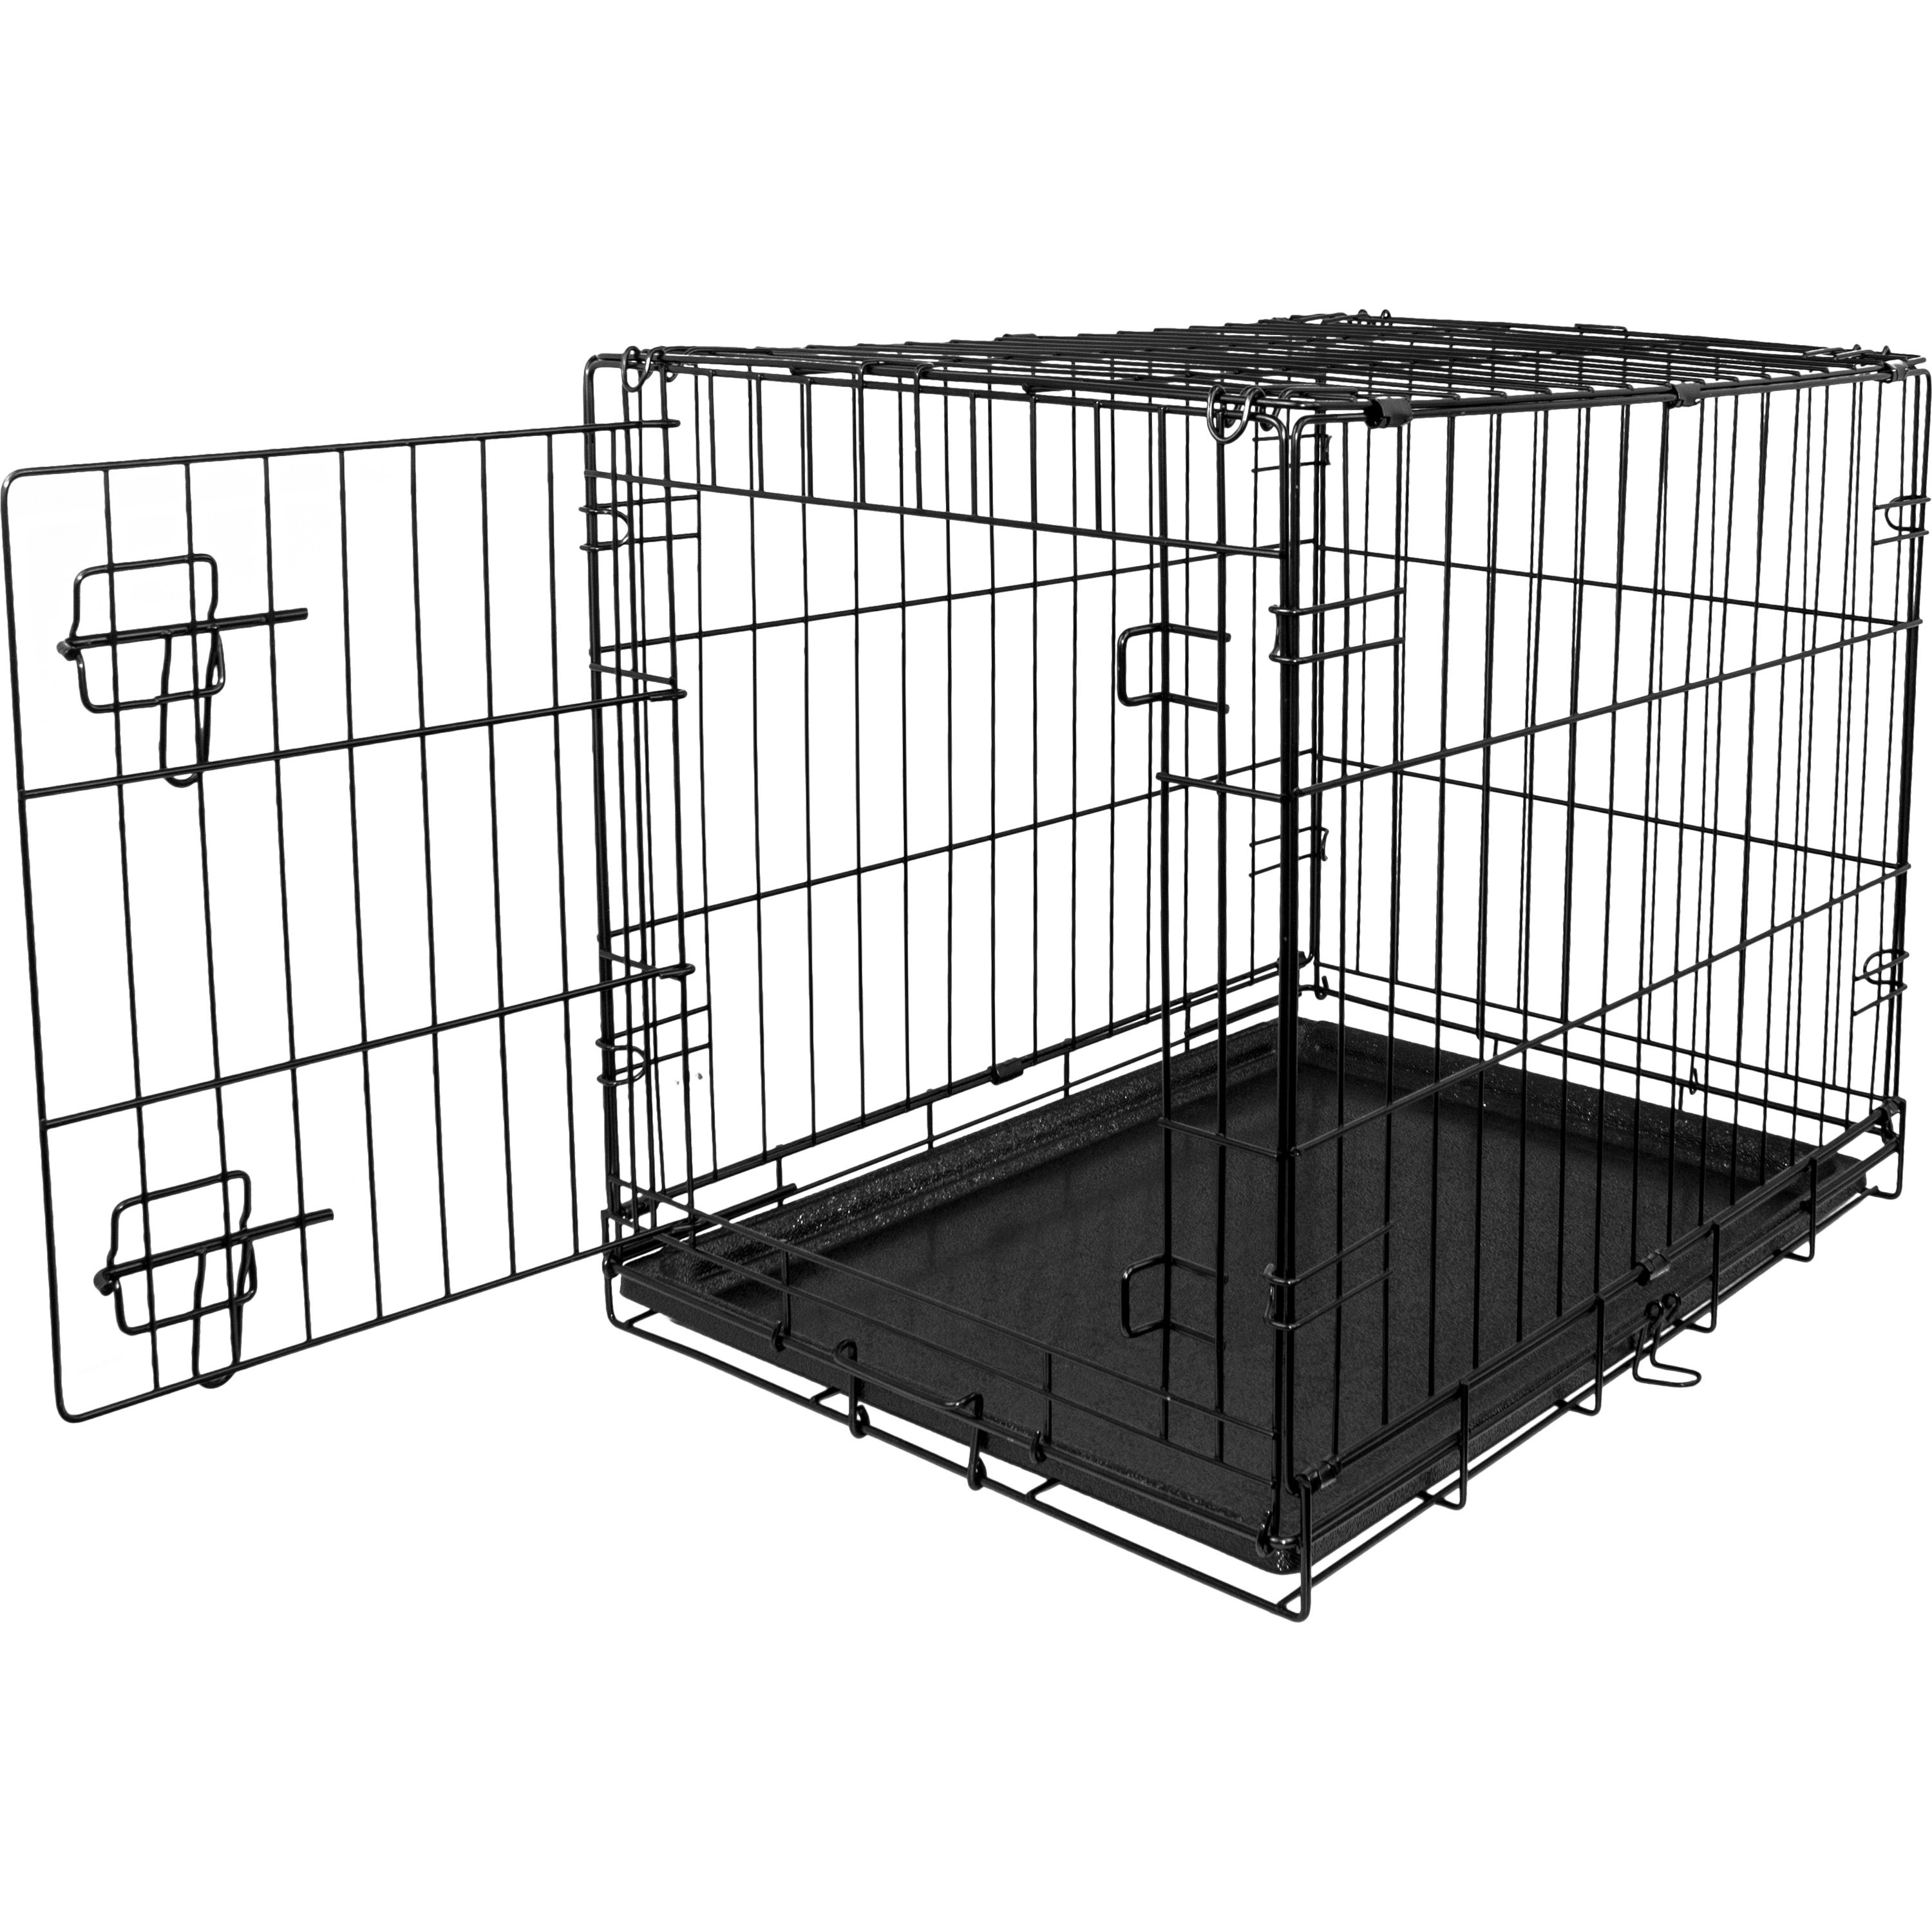 "Blue Beagle Folding Dog Crate, 24"" Small Single Door Kennel by TAIWAN CABLE INDUSTRIAL CO LTD"